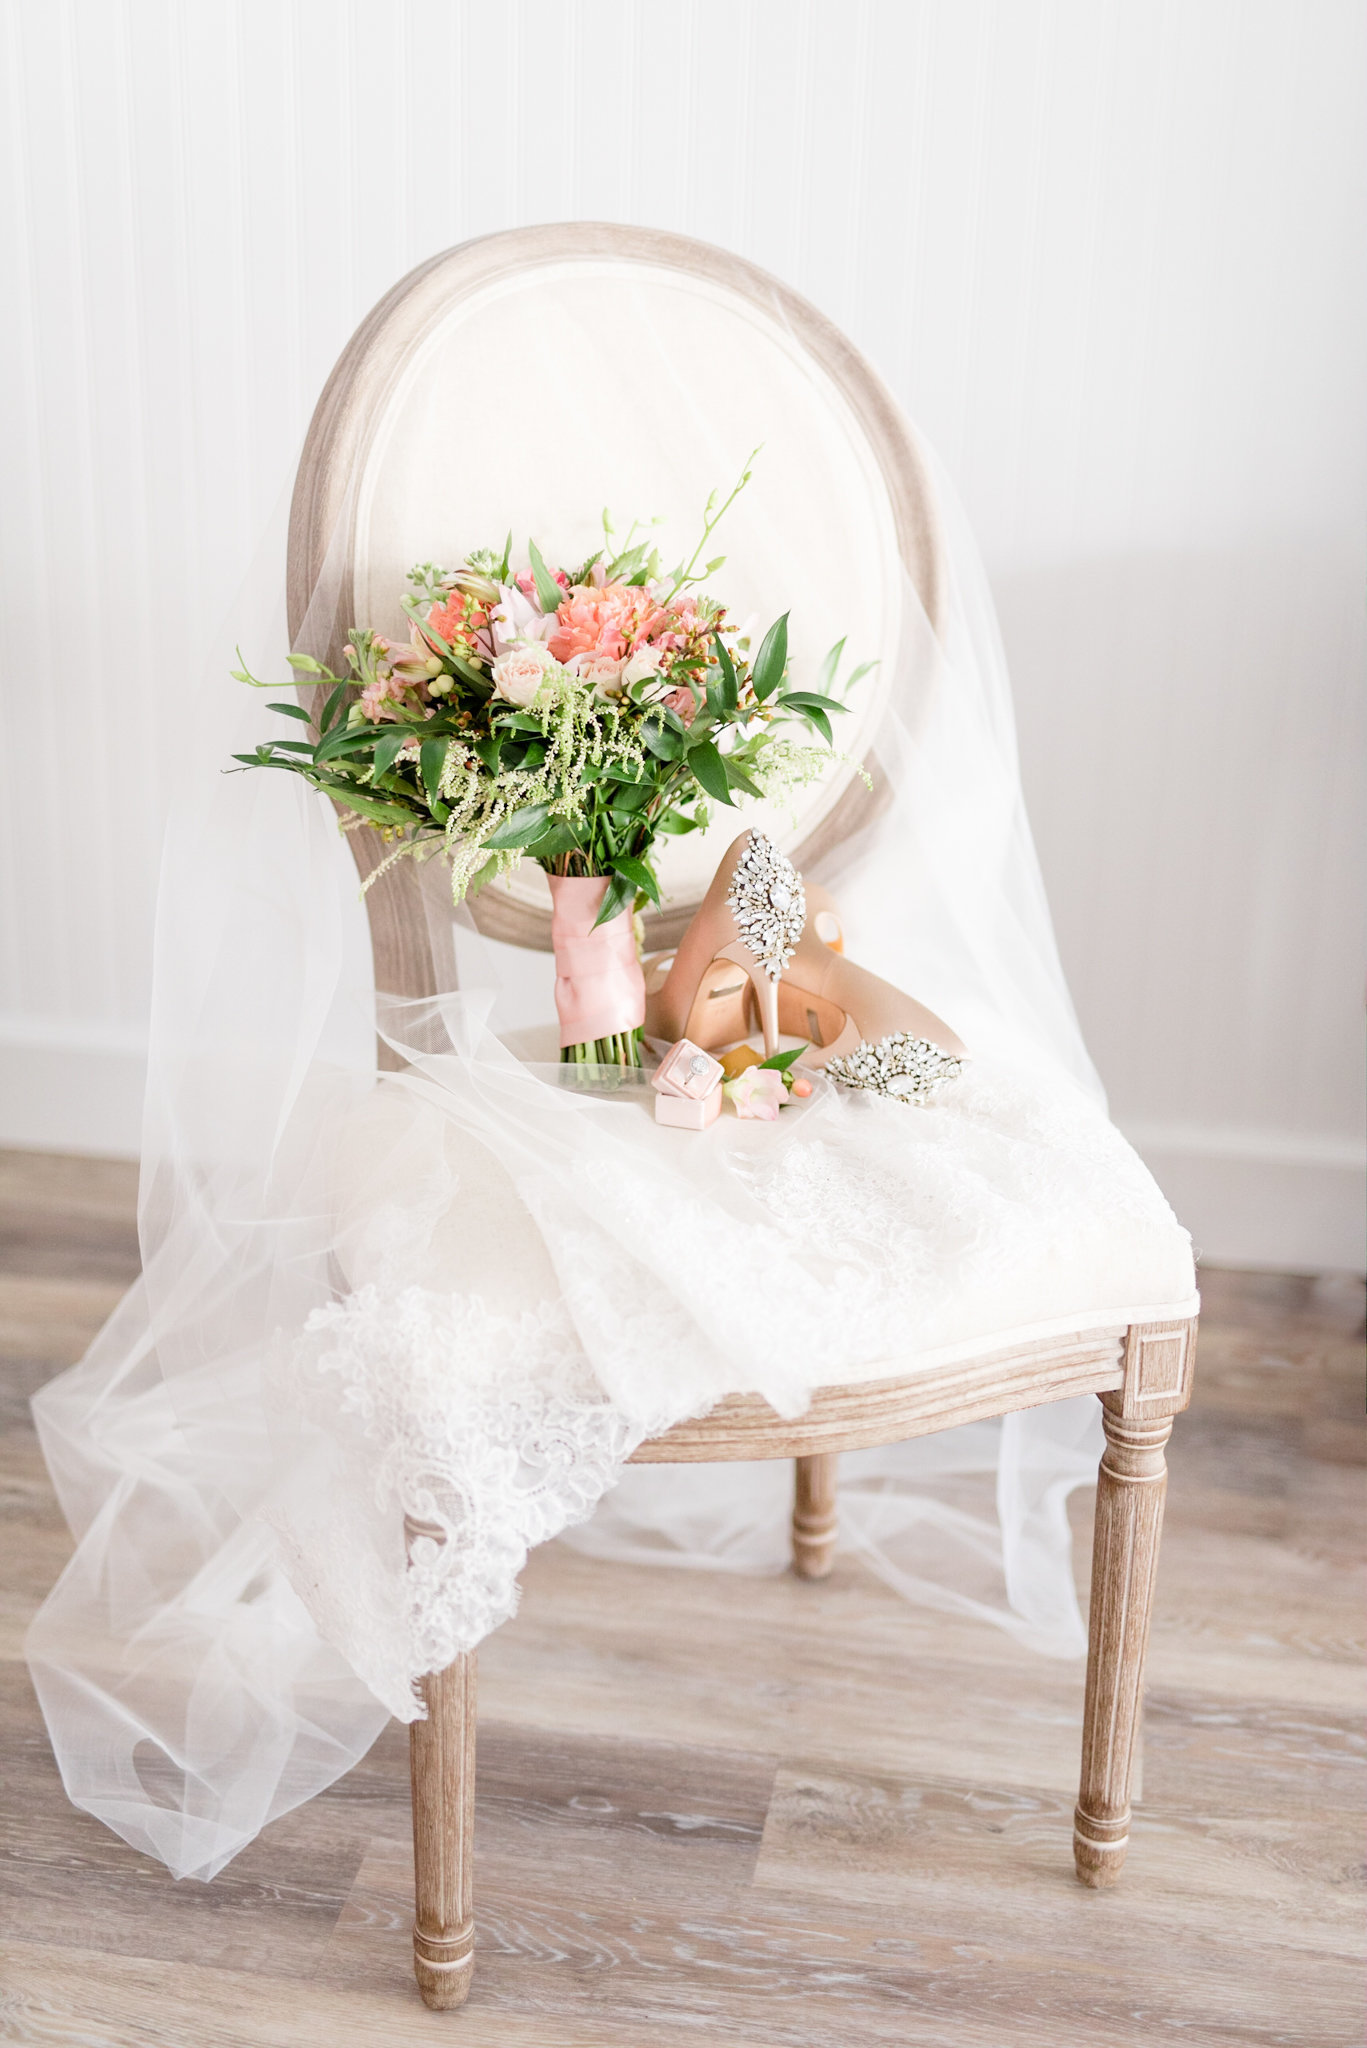 Bouquet and wedding heels sit on chair.